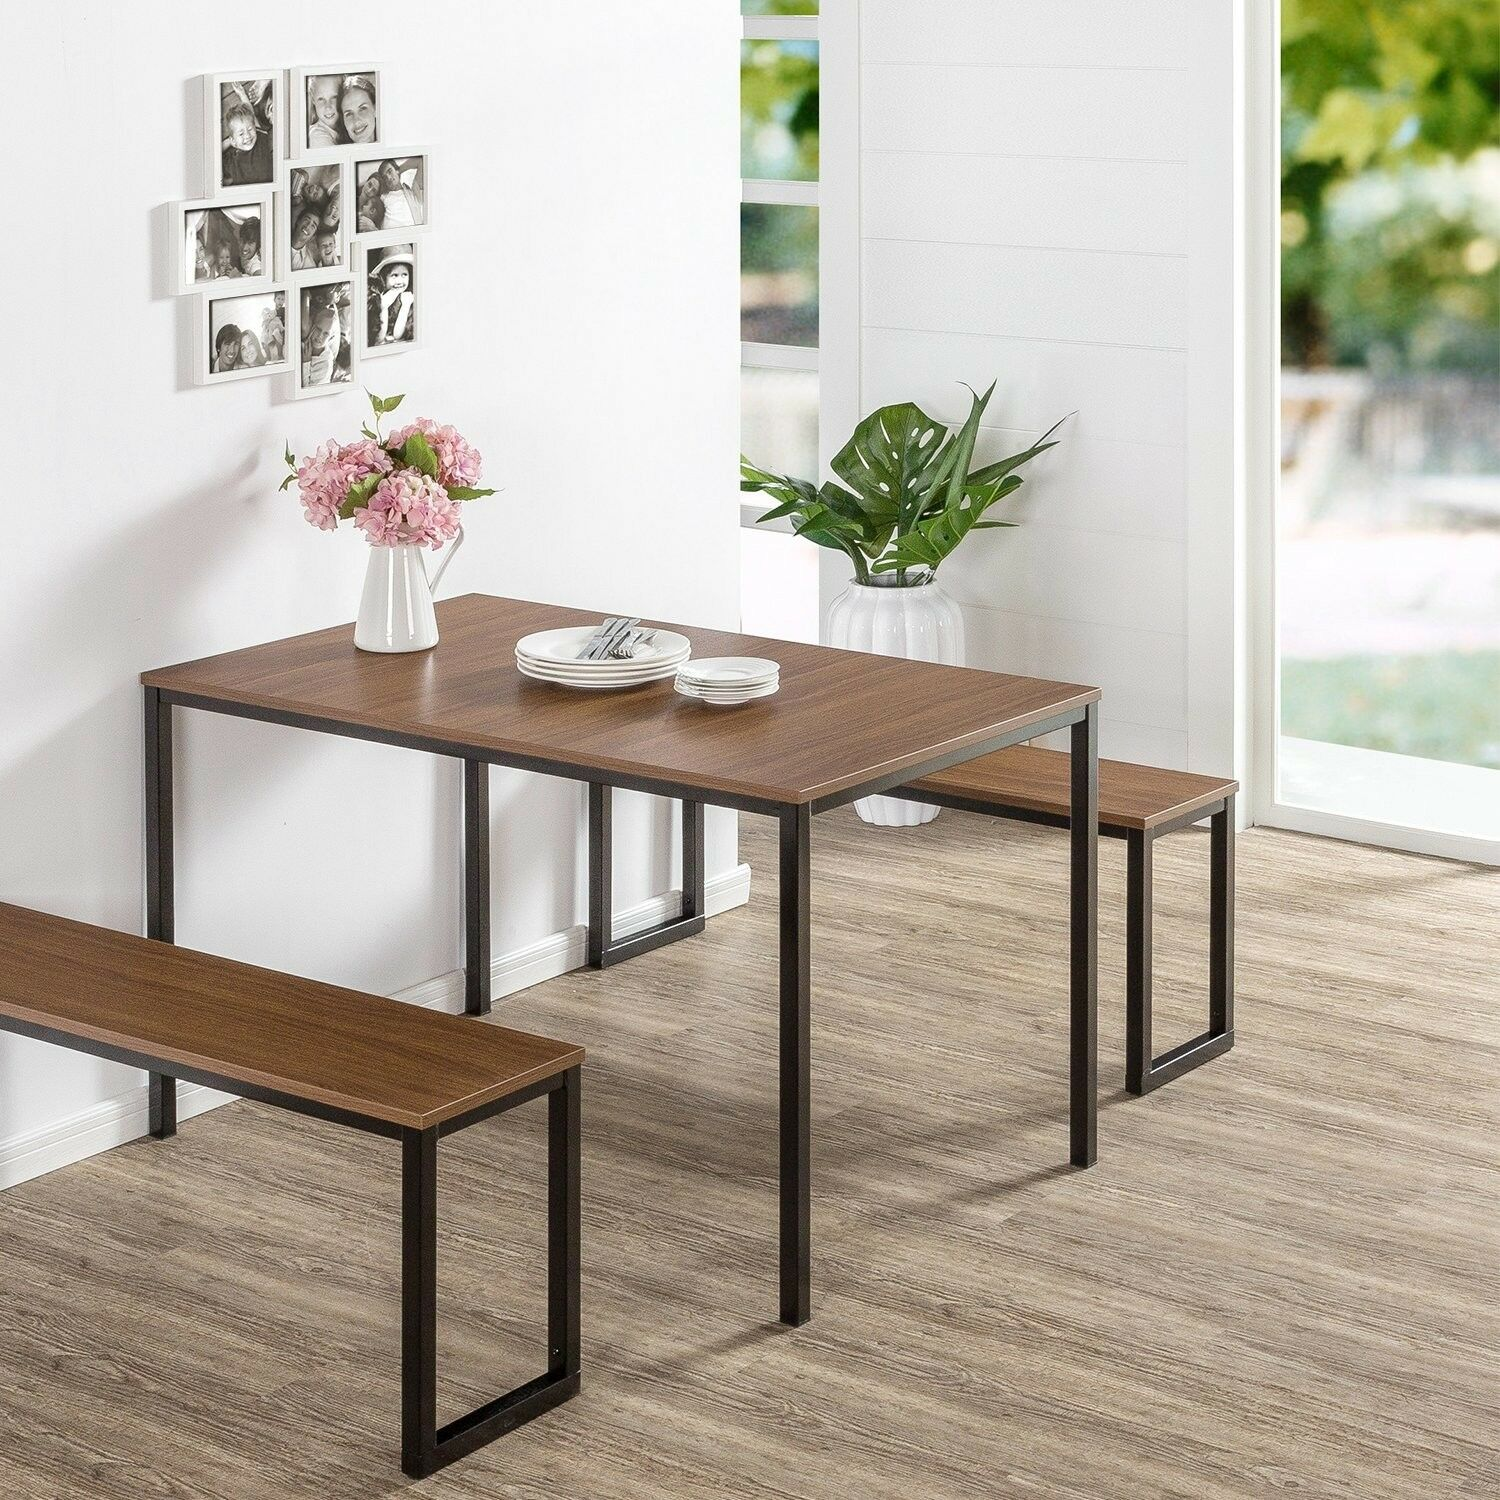 Zinus Louis Modern Studio Collection Soho Dining Table with